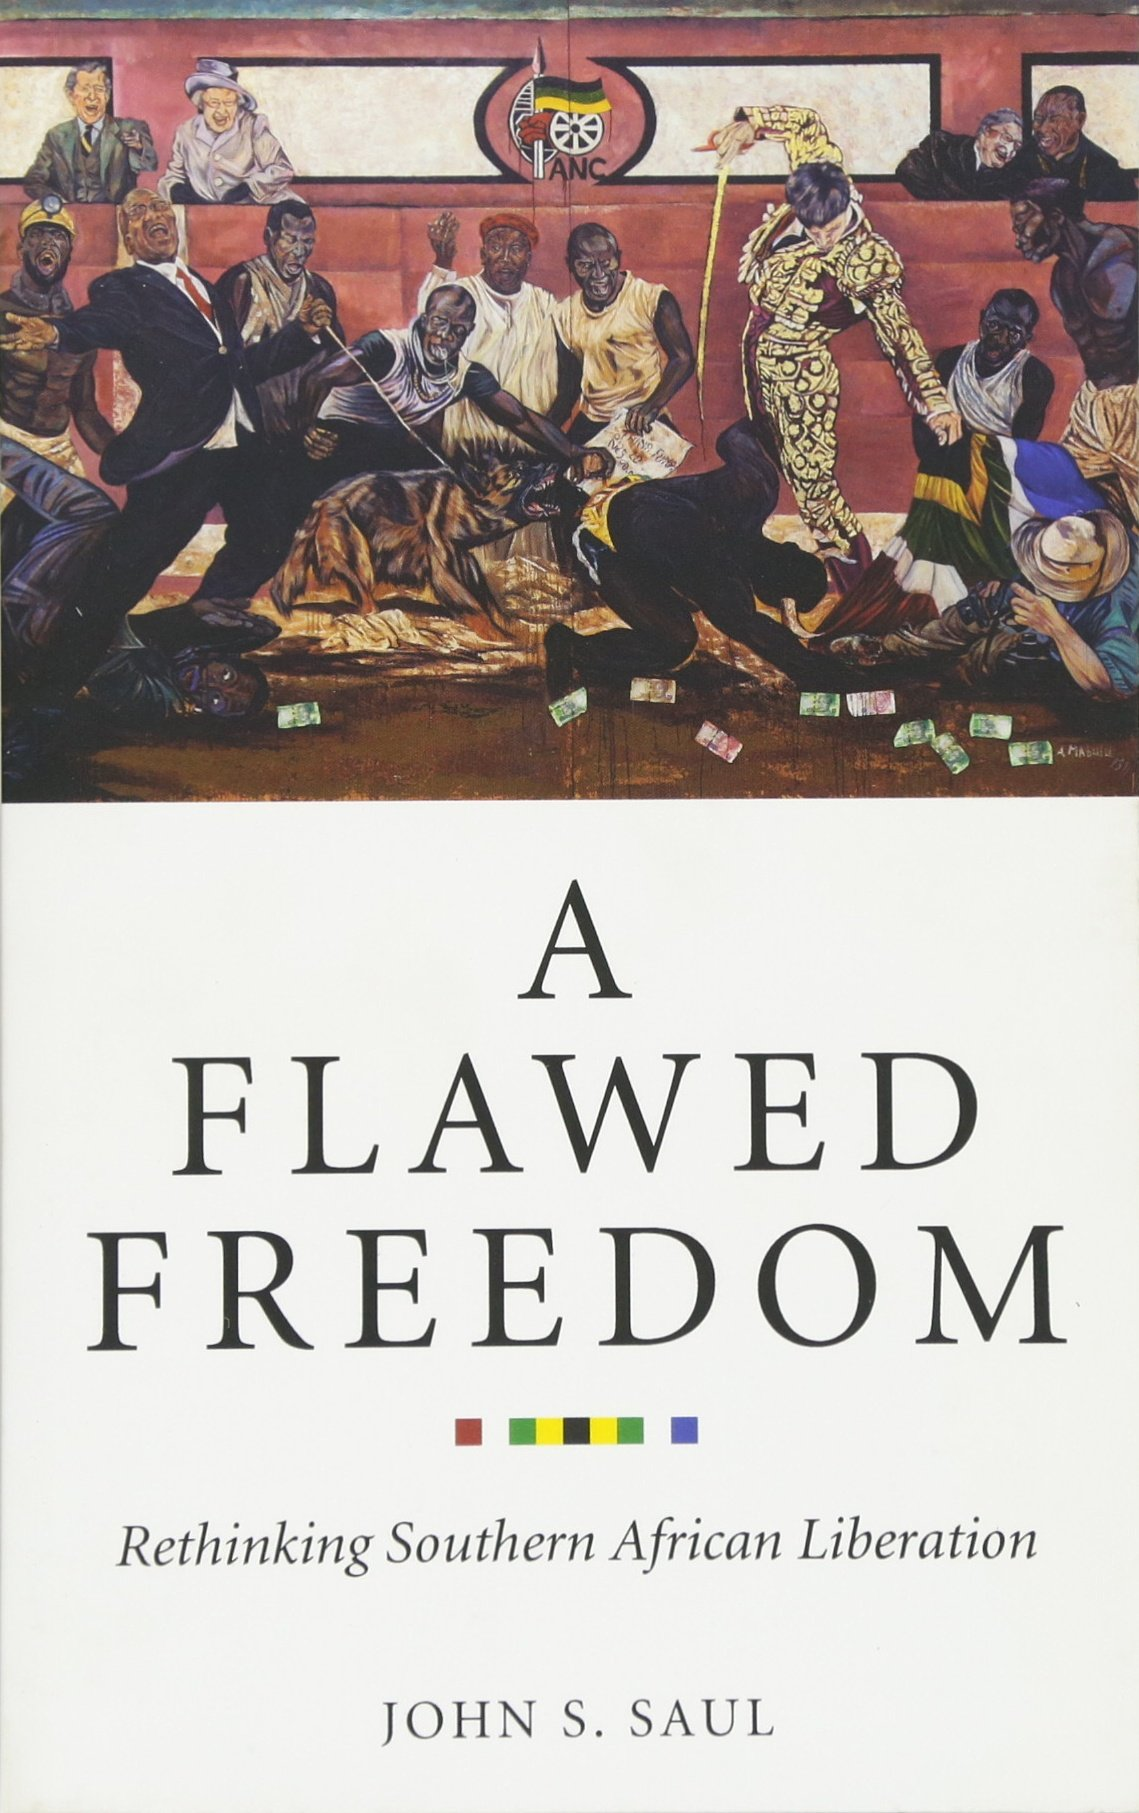 Download A Flawed Freedom: Rethinking Southern African Liberation PDF Text fb2 book